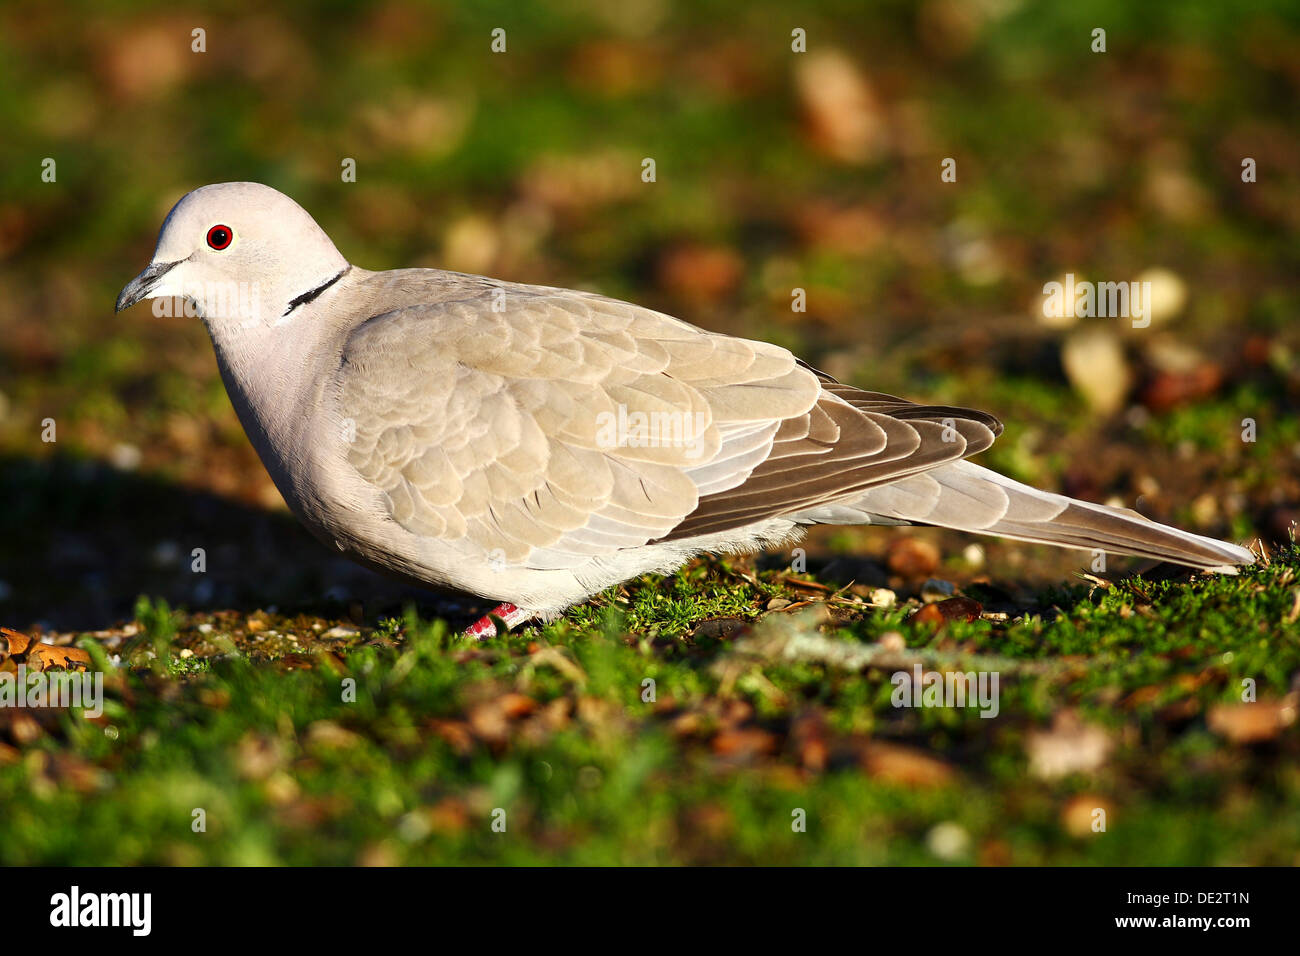 Eurasian Collared Dove (Streptopelia decaocto), National Park Monfrague, Exdremadura, Spain, Europe Stock Photo